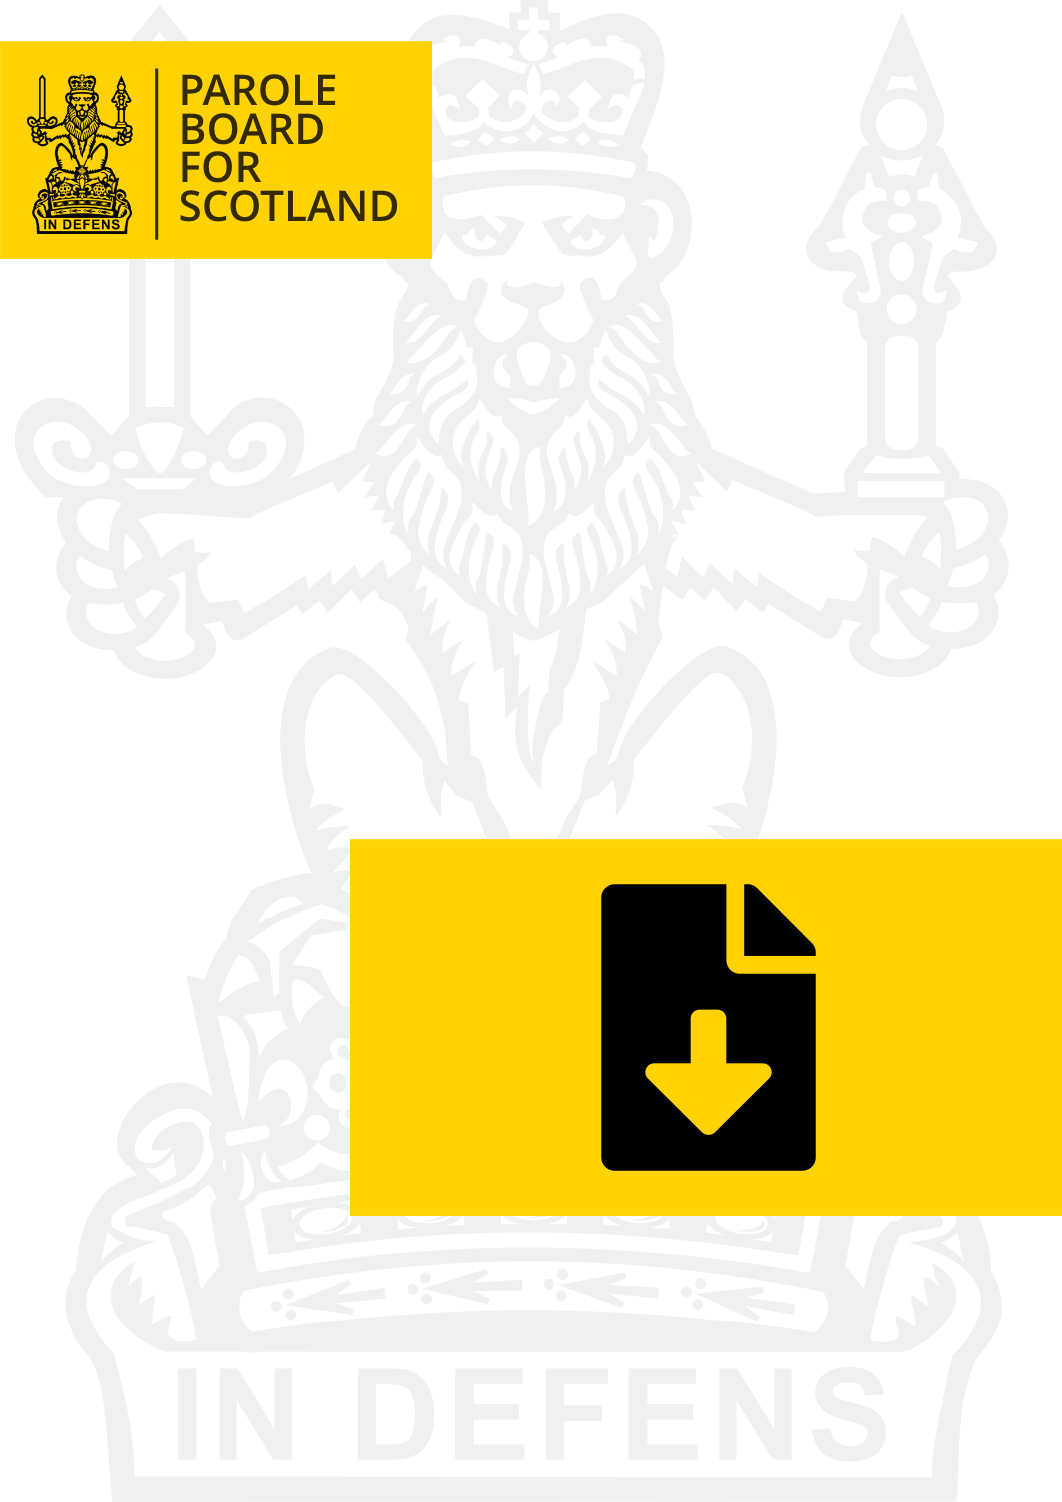 Annual Report 2018 - 2019 - Cover image